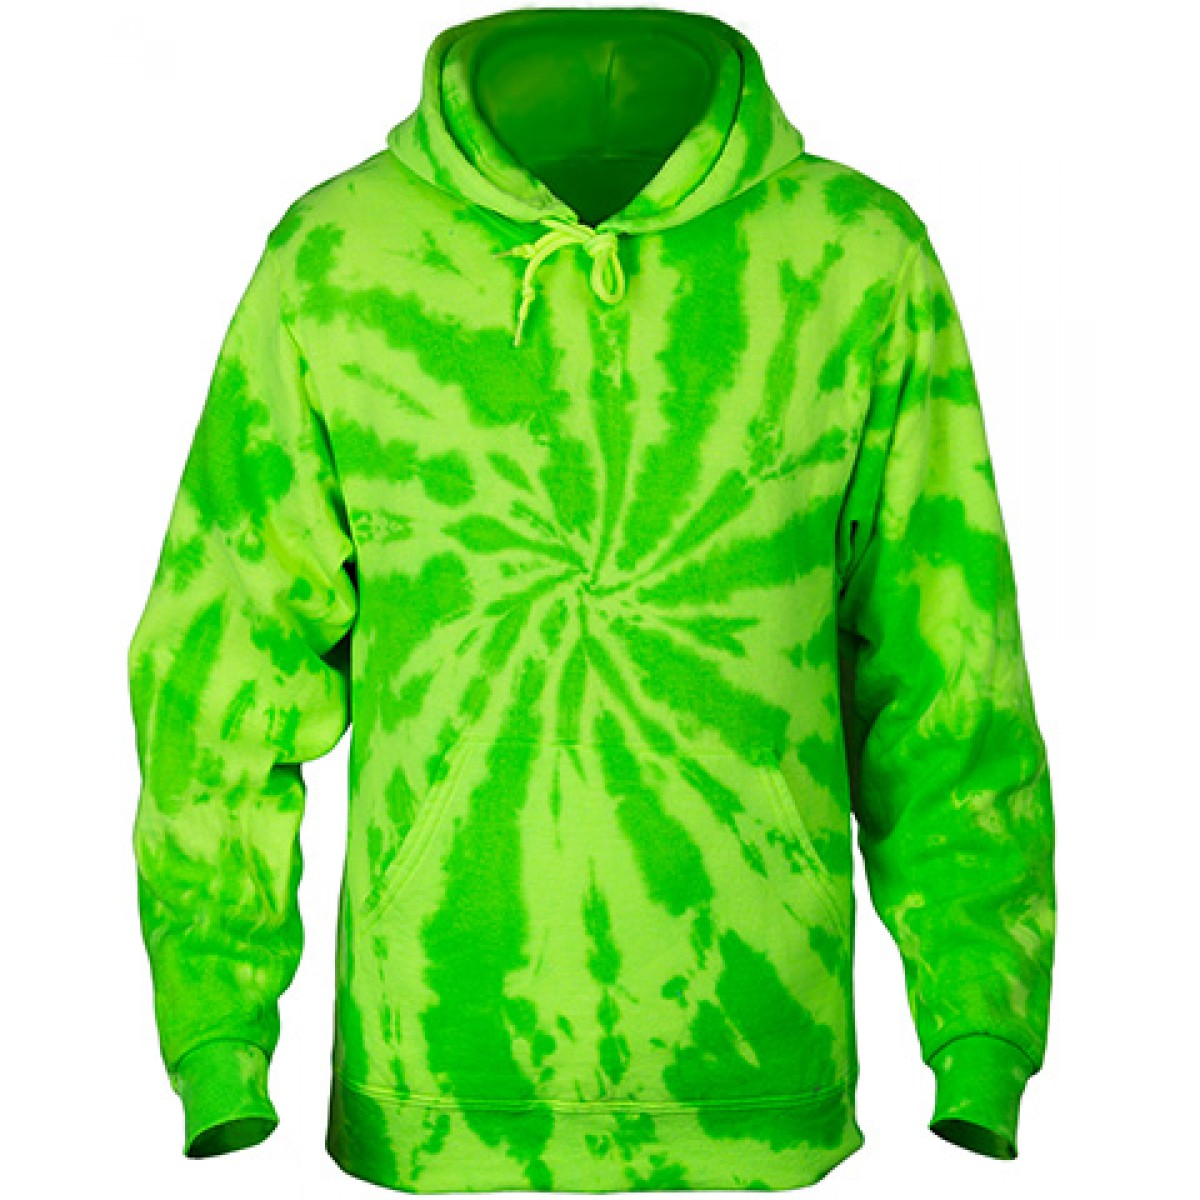 Tie-Dye Pullover Hooded Sweatshirt-Neon Green-YL